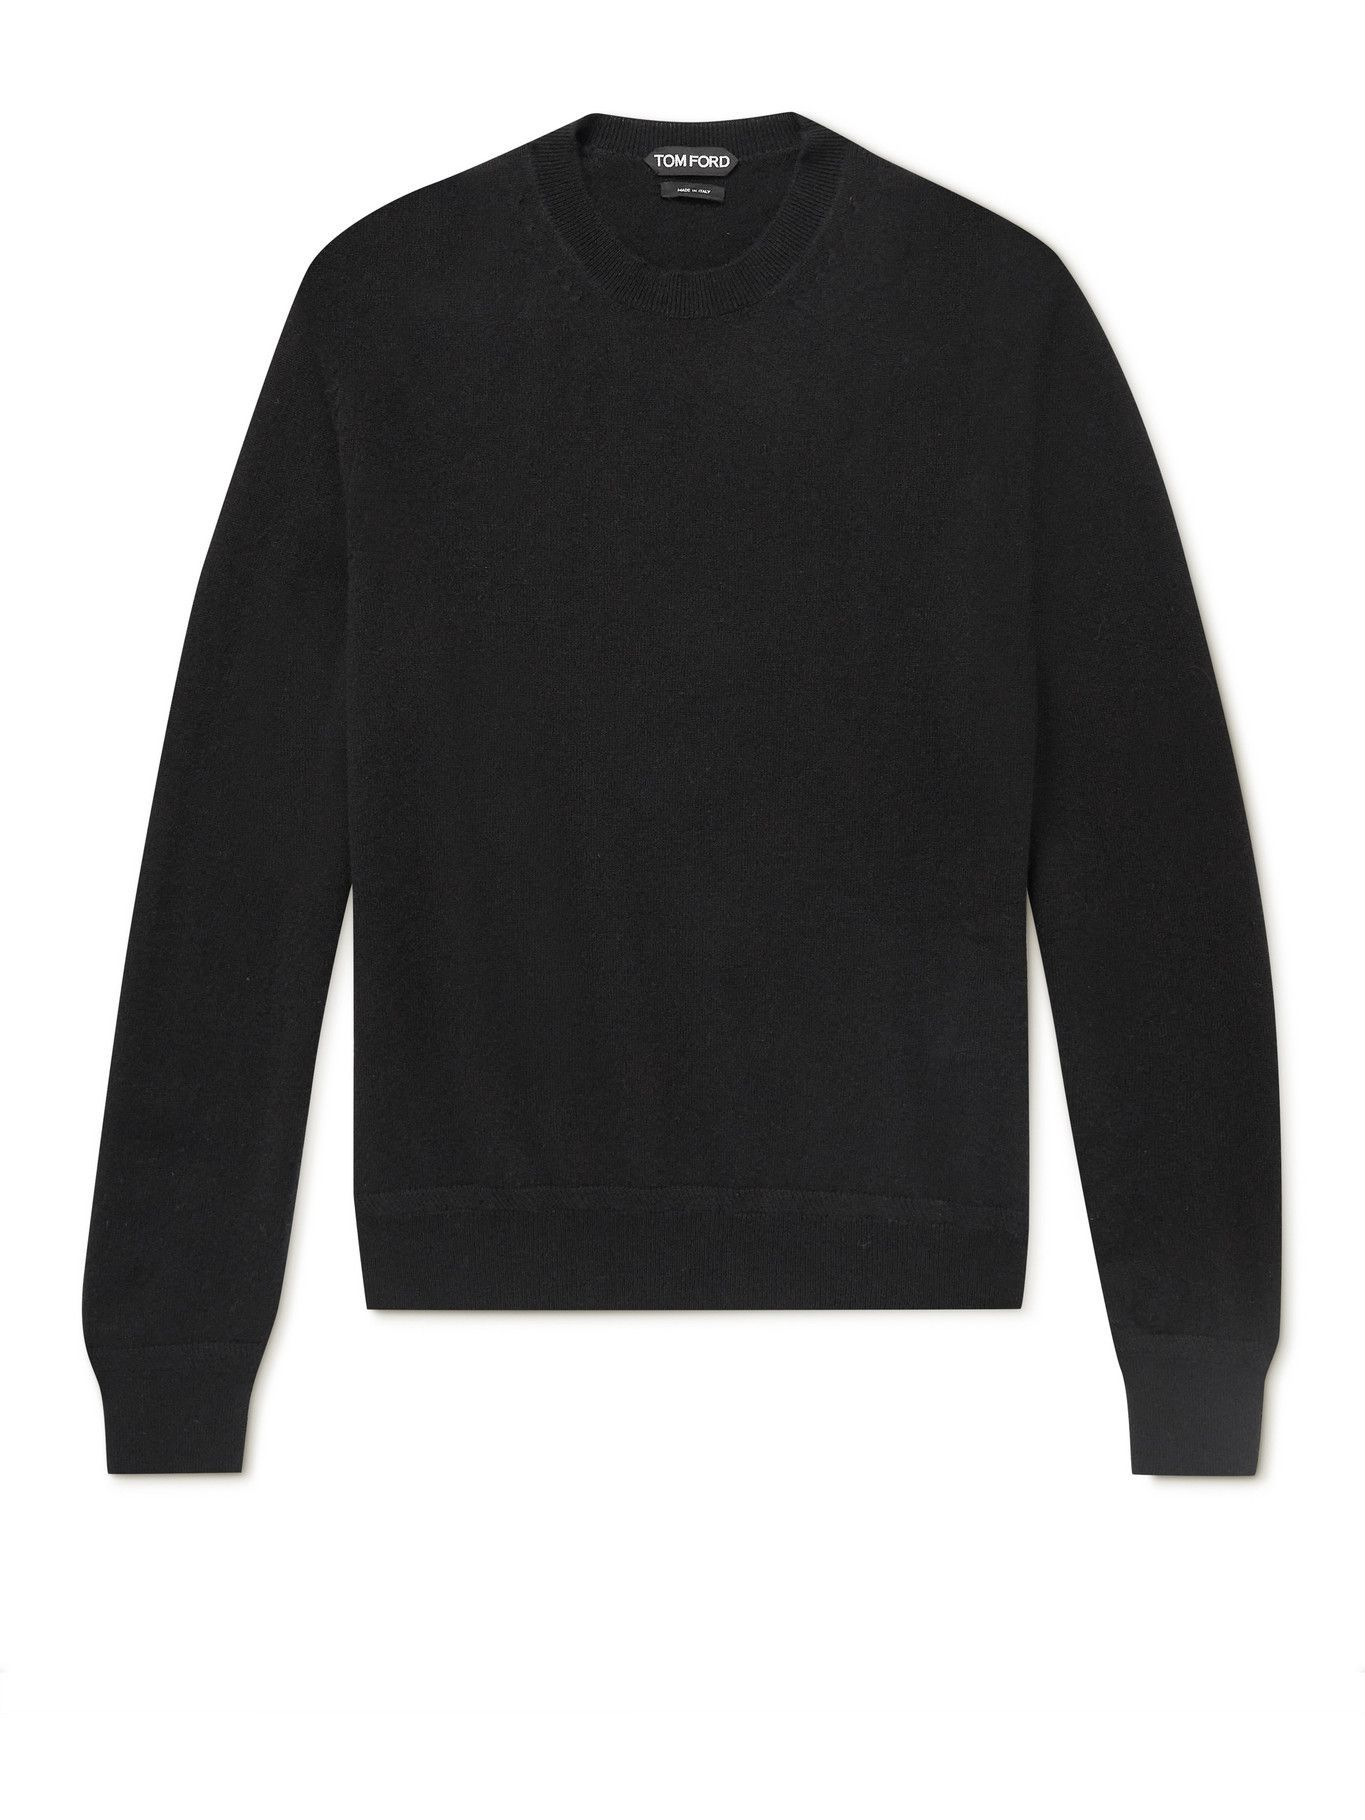 Photo: TOM FORD - Cashmere Sweater - Black